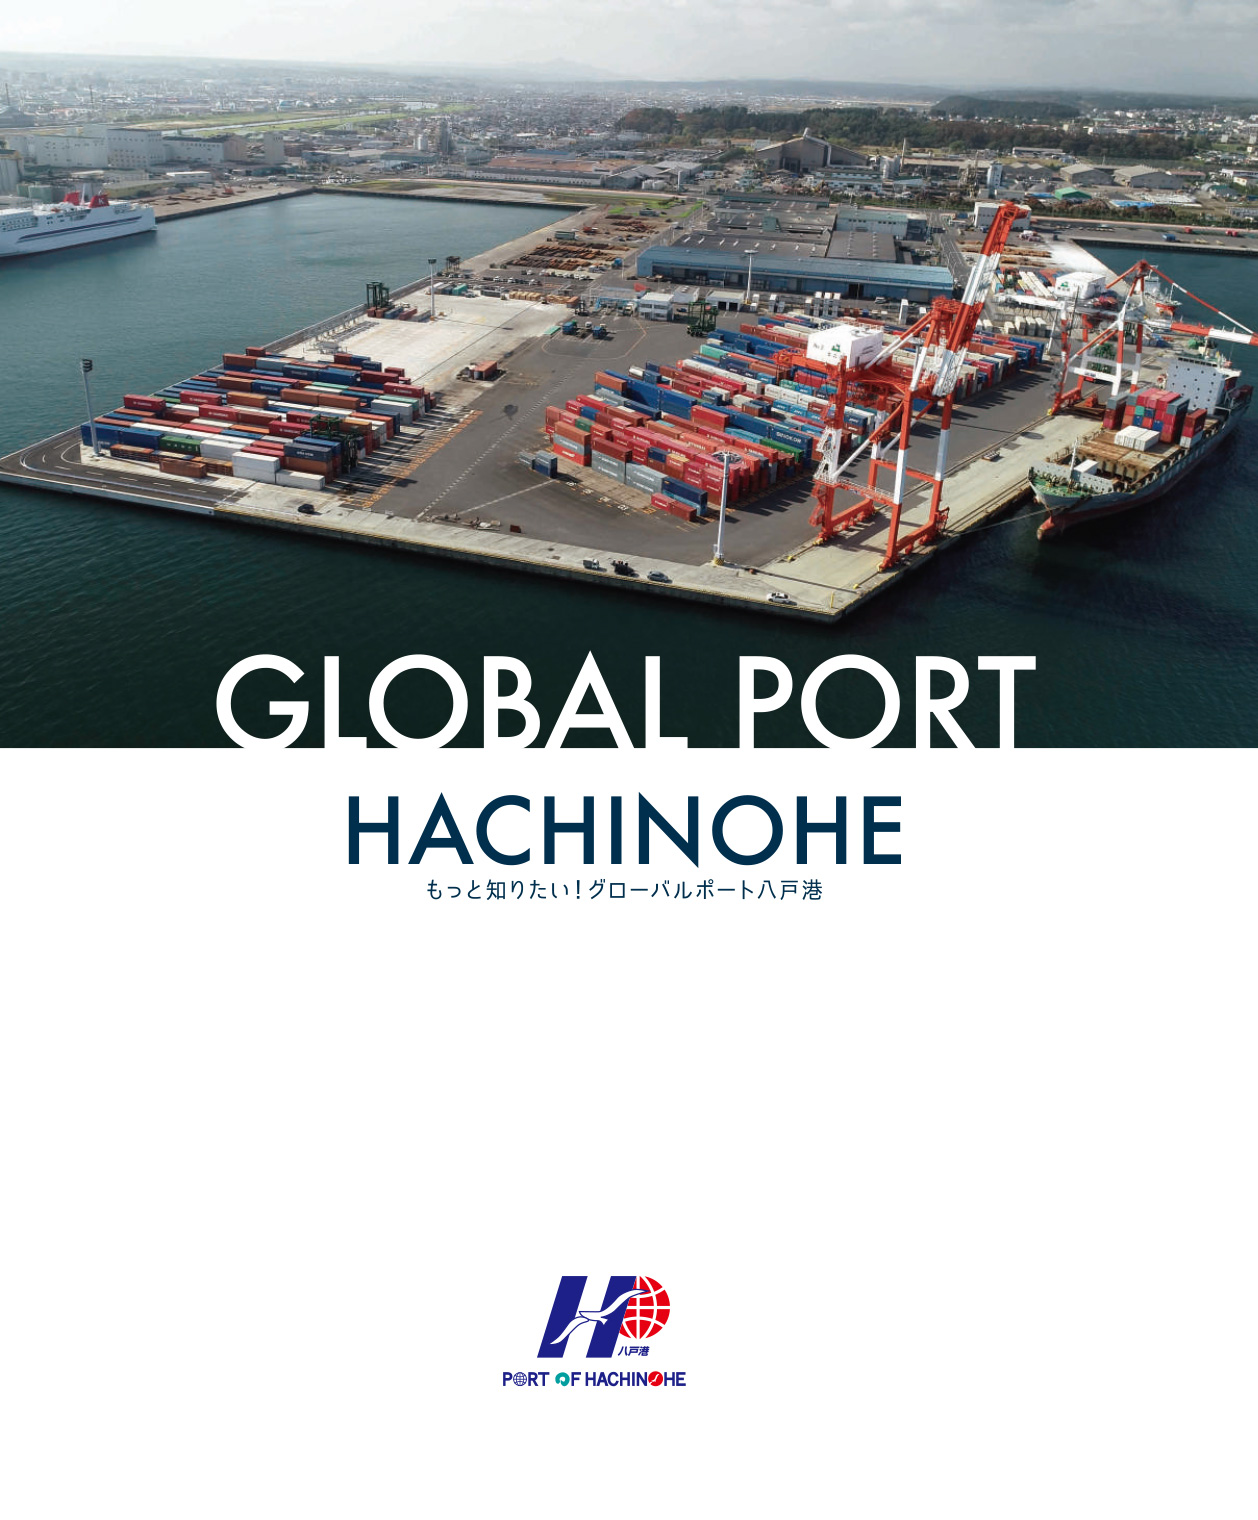 Guide to Hachinohe Port「GLOBAL PORT HACHINOHE」